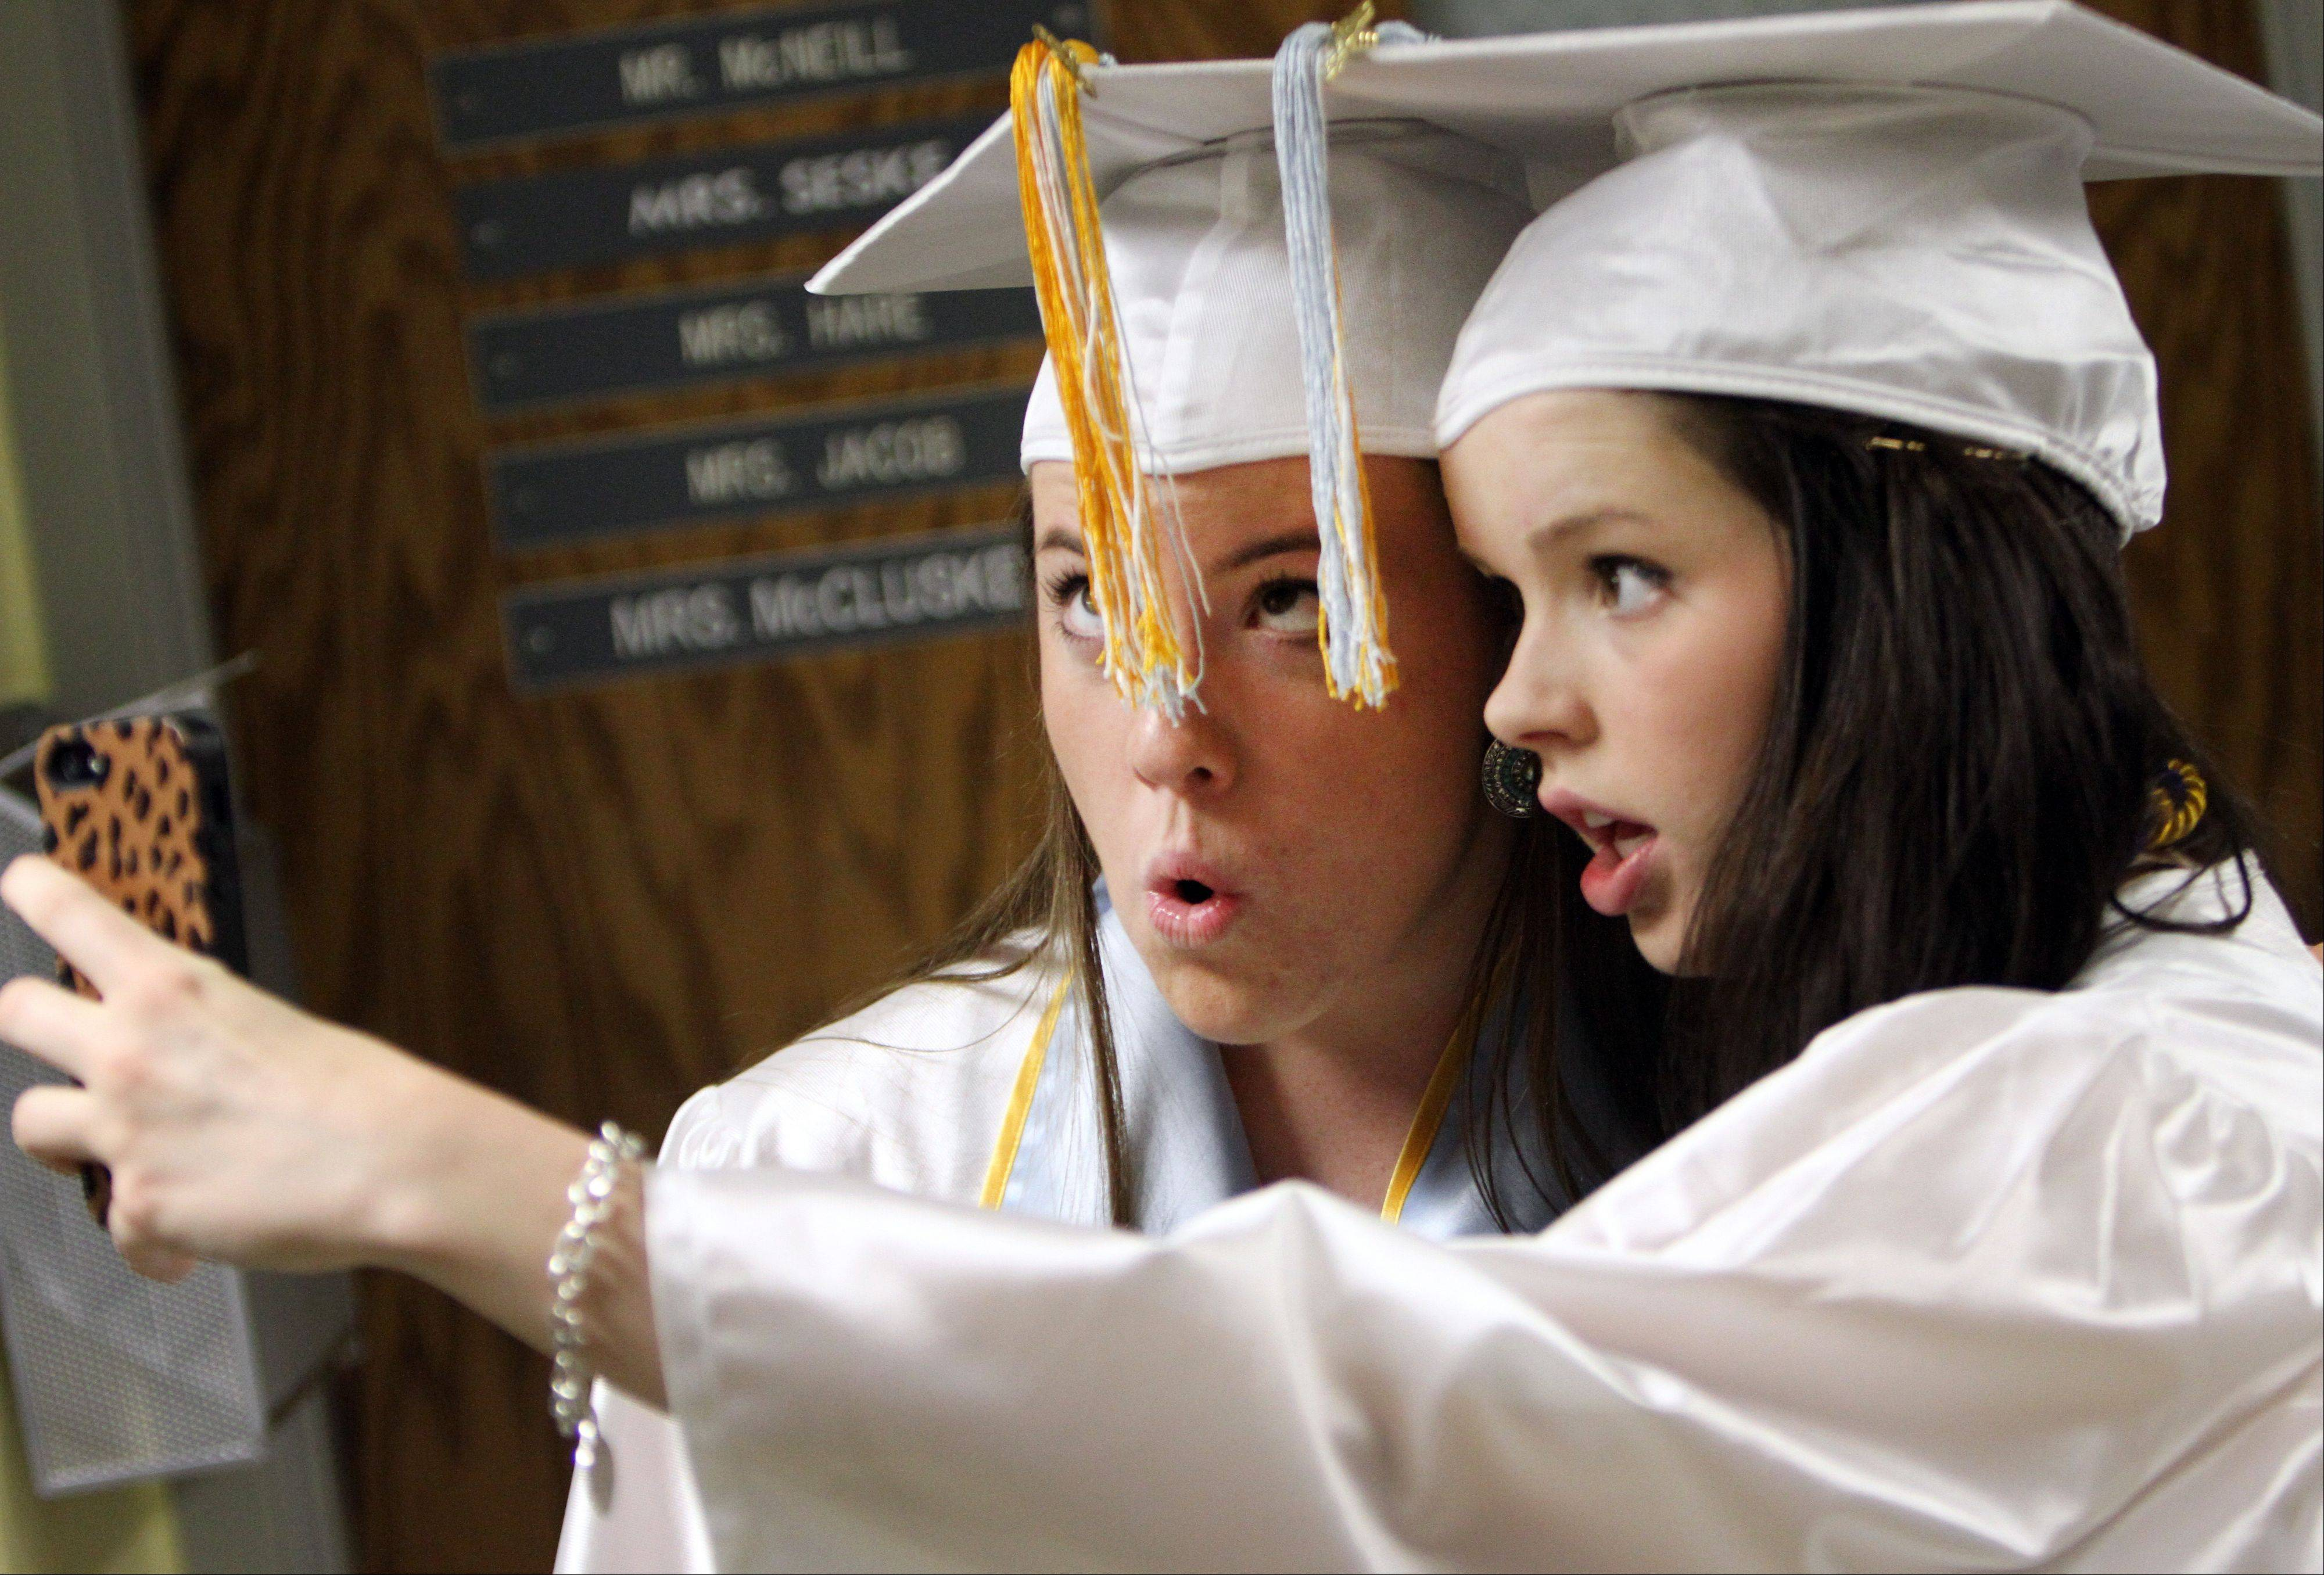 Renee Pond, left, and Margaret Dugan make funny faces as they pose for a picture during graduation ceremonies Sunday at Maine West High School.